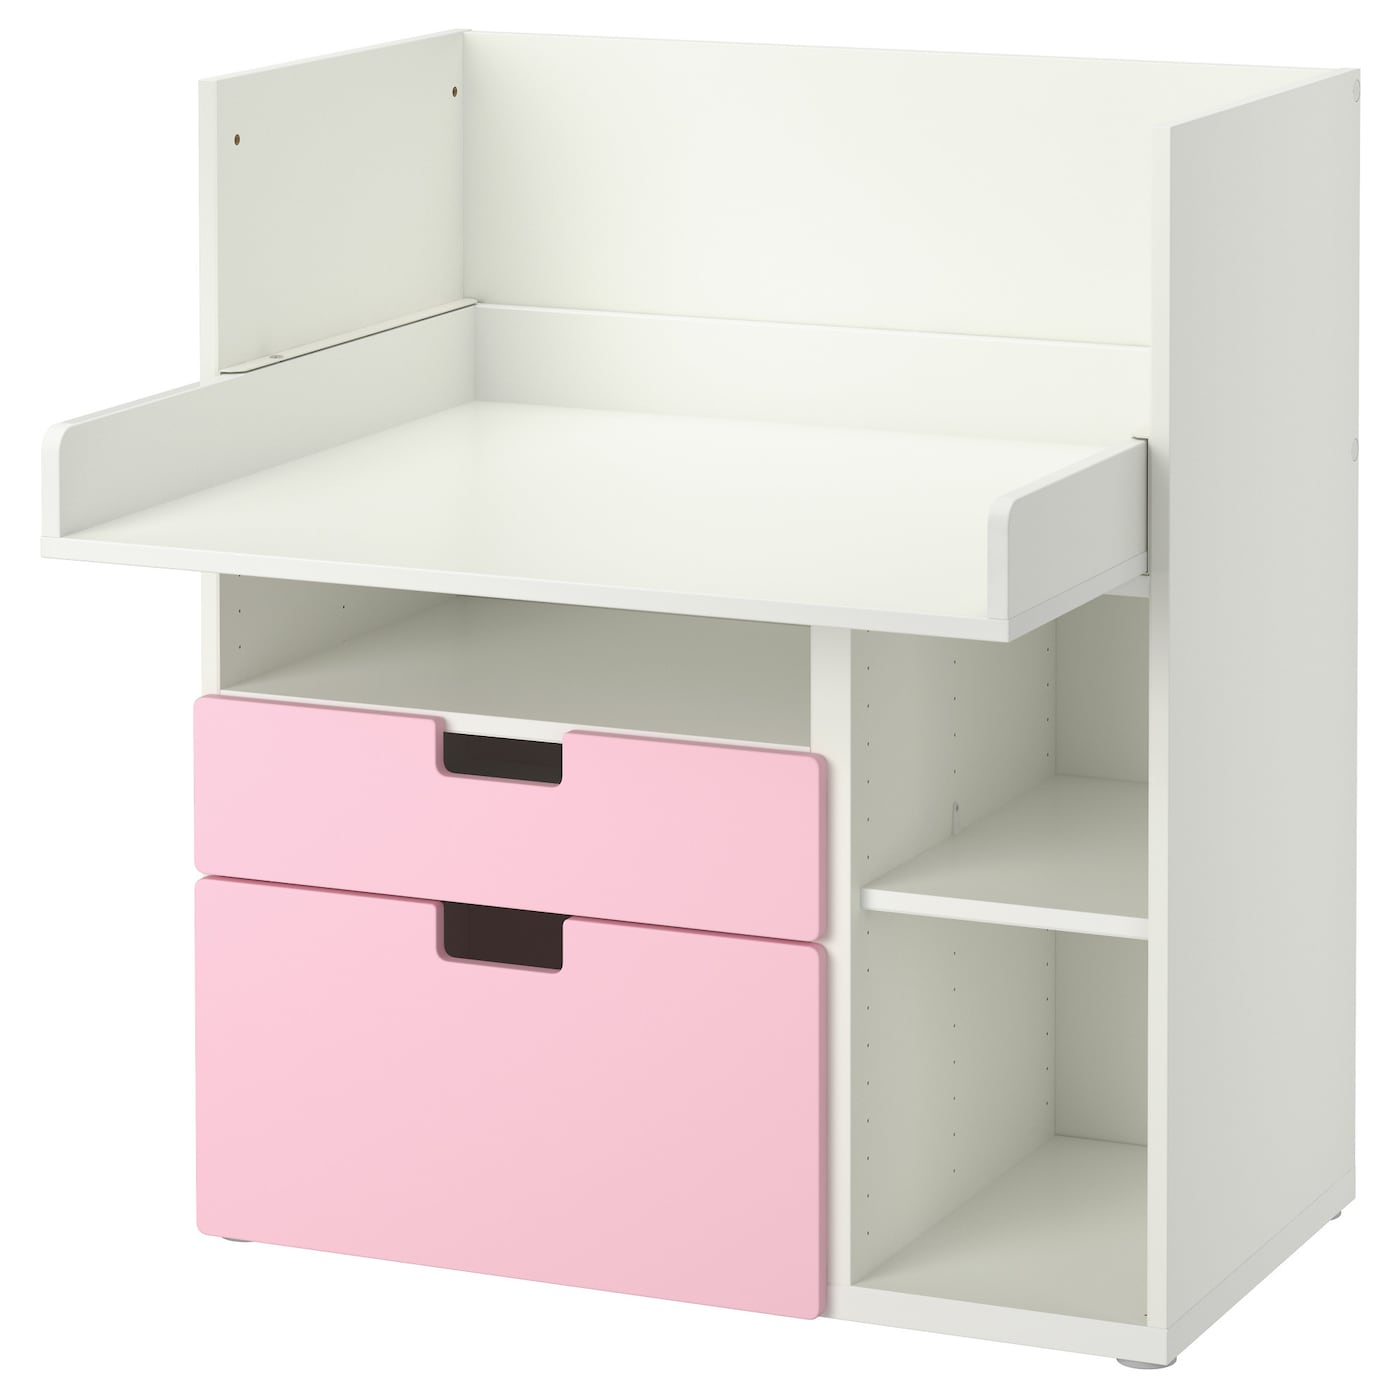 Stuva desk with 2 drawers white pink 90x79x102 cm ikea - Ikea desk drawer organizer ...